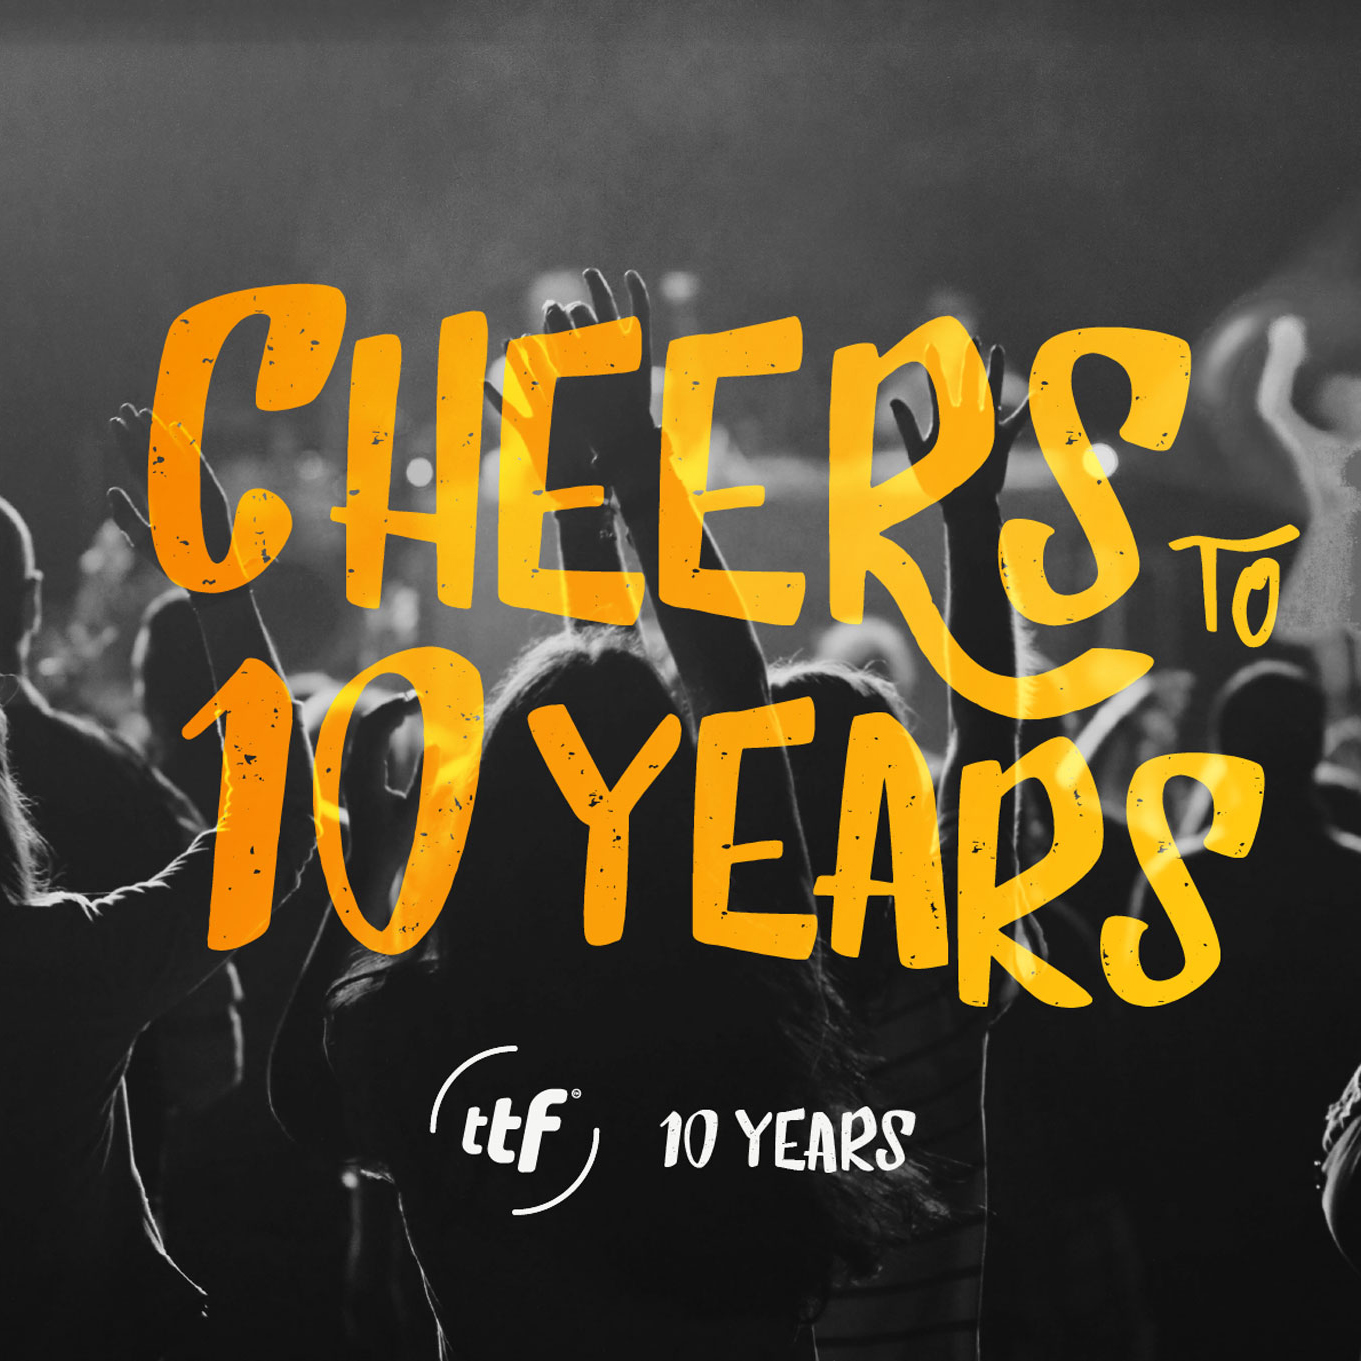 The Ticket Factory's 'Cheers to 10 Years' campaign